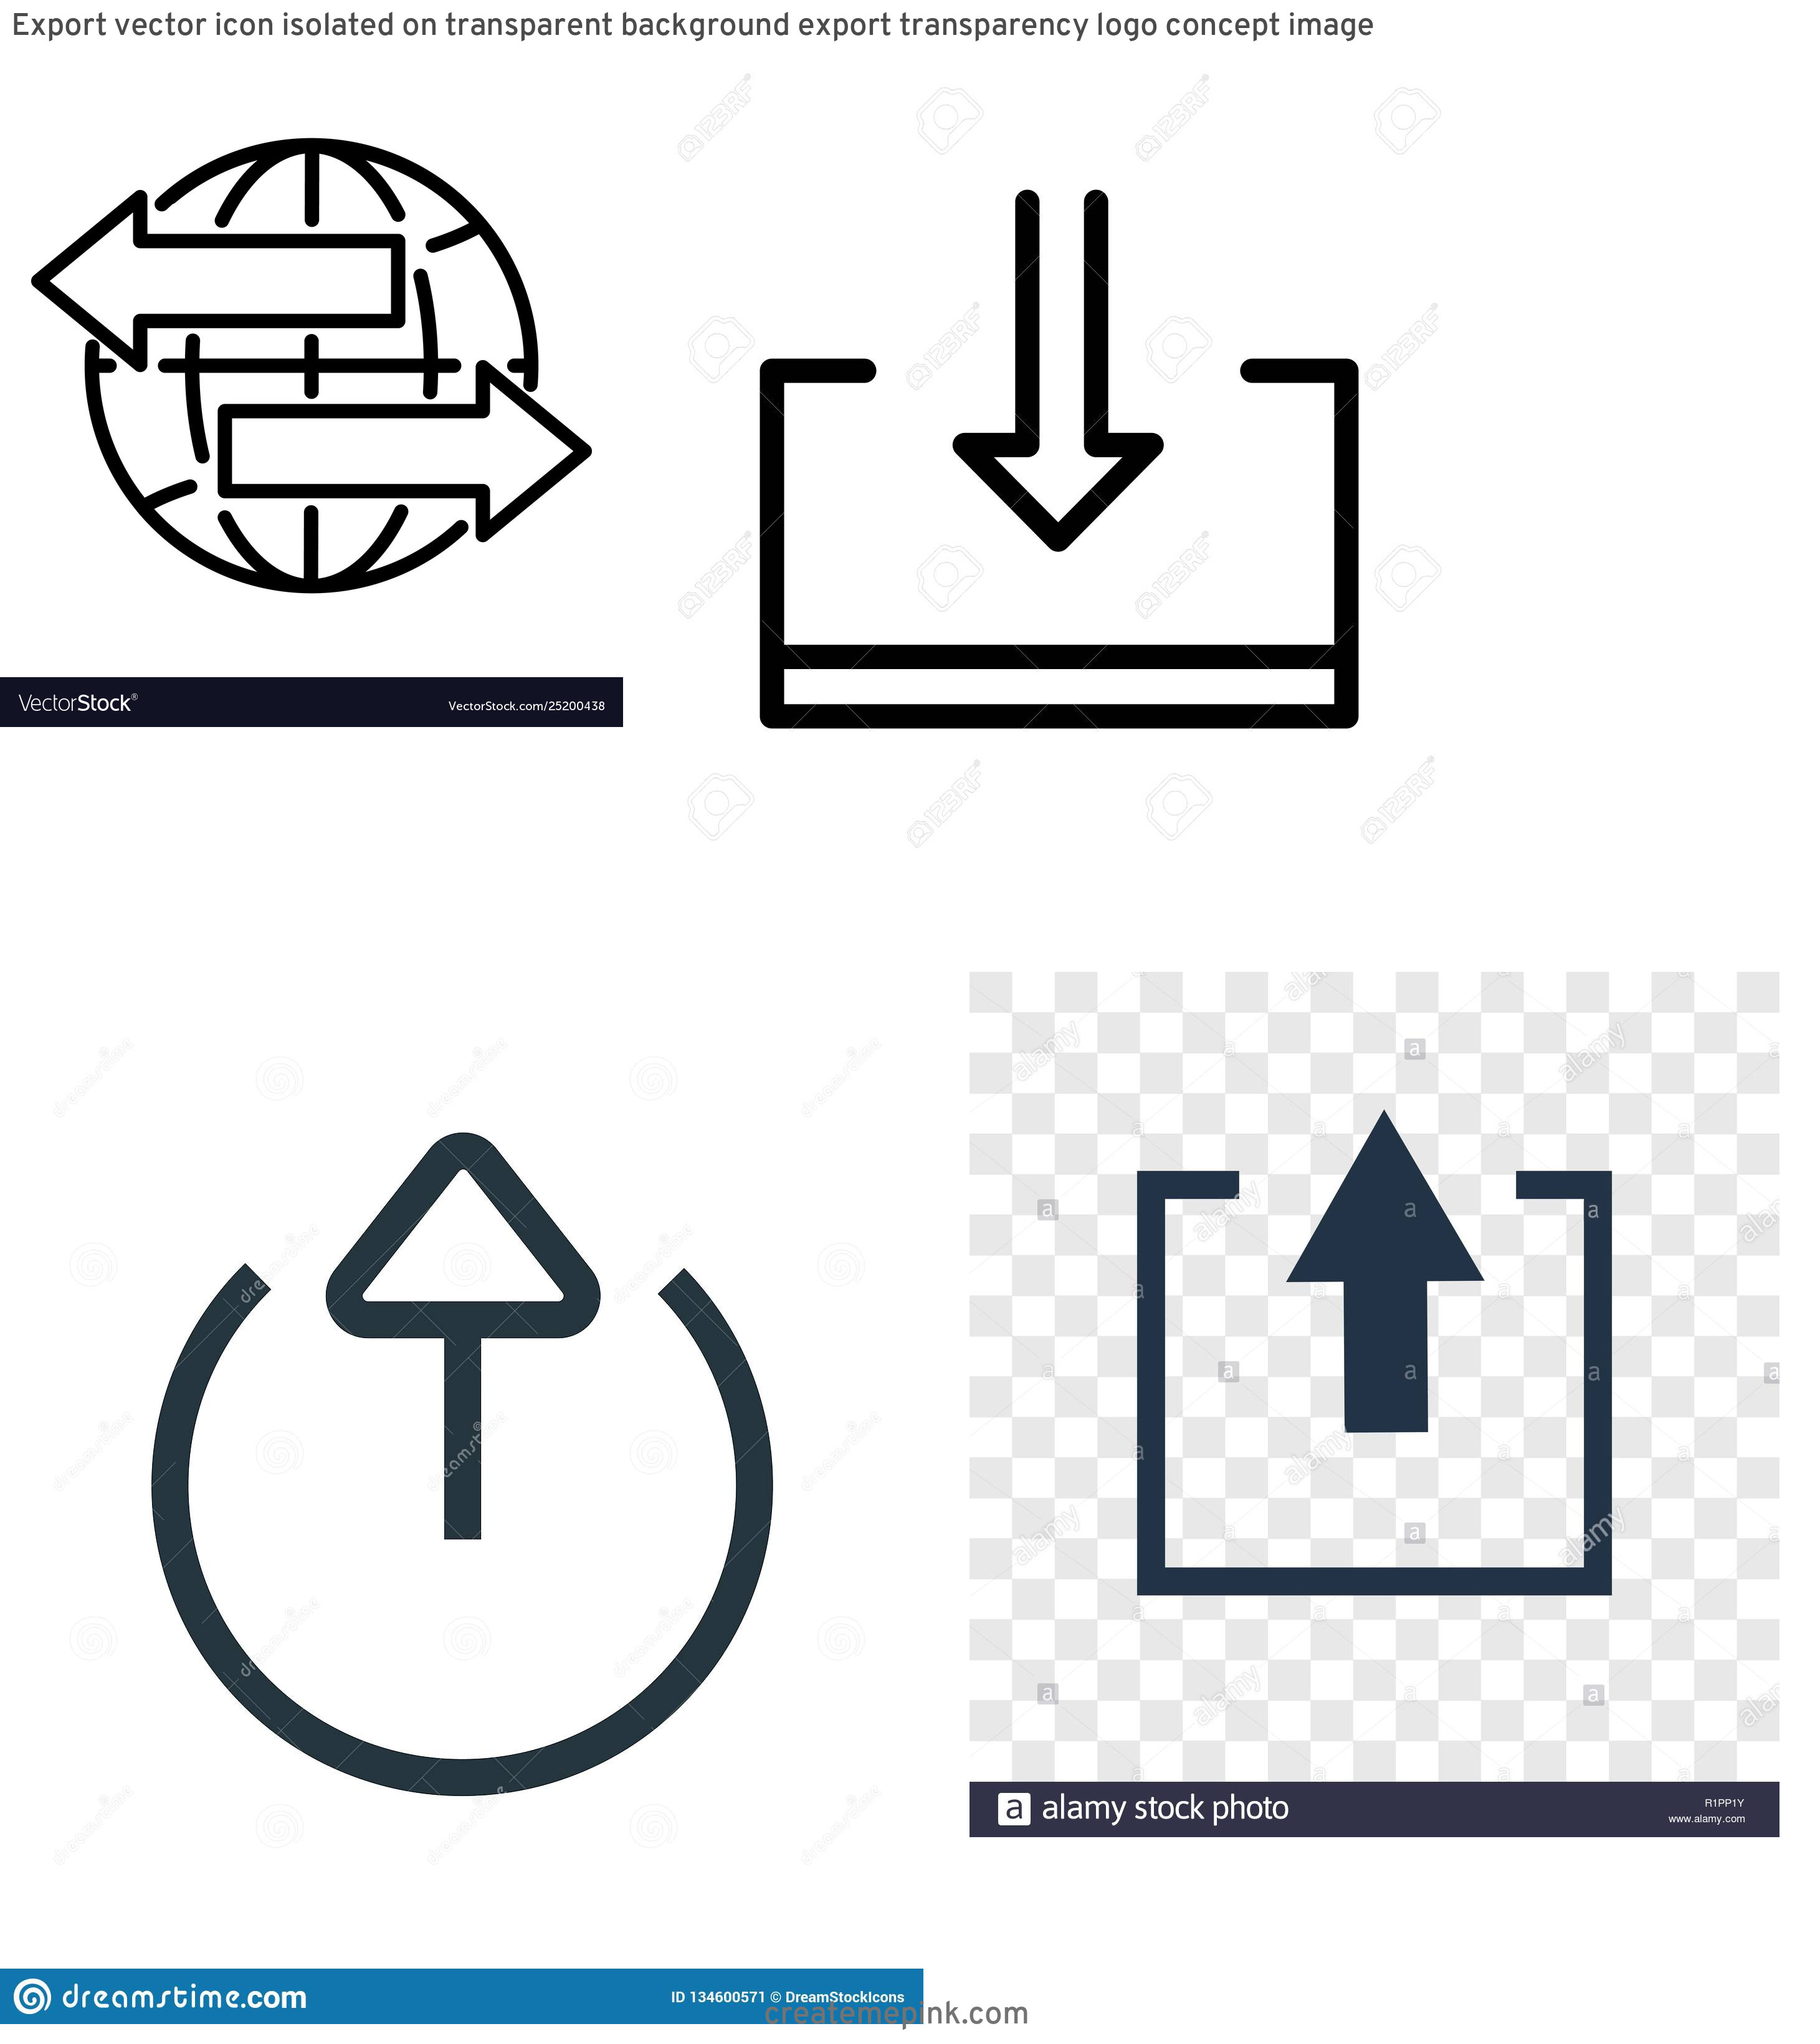 Export Icon Vector: Export Vector Icon Isolated On Transparent Background Export Transparency Logo Concept Image